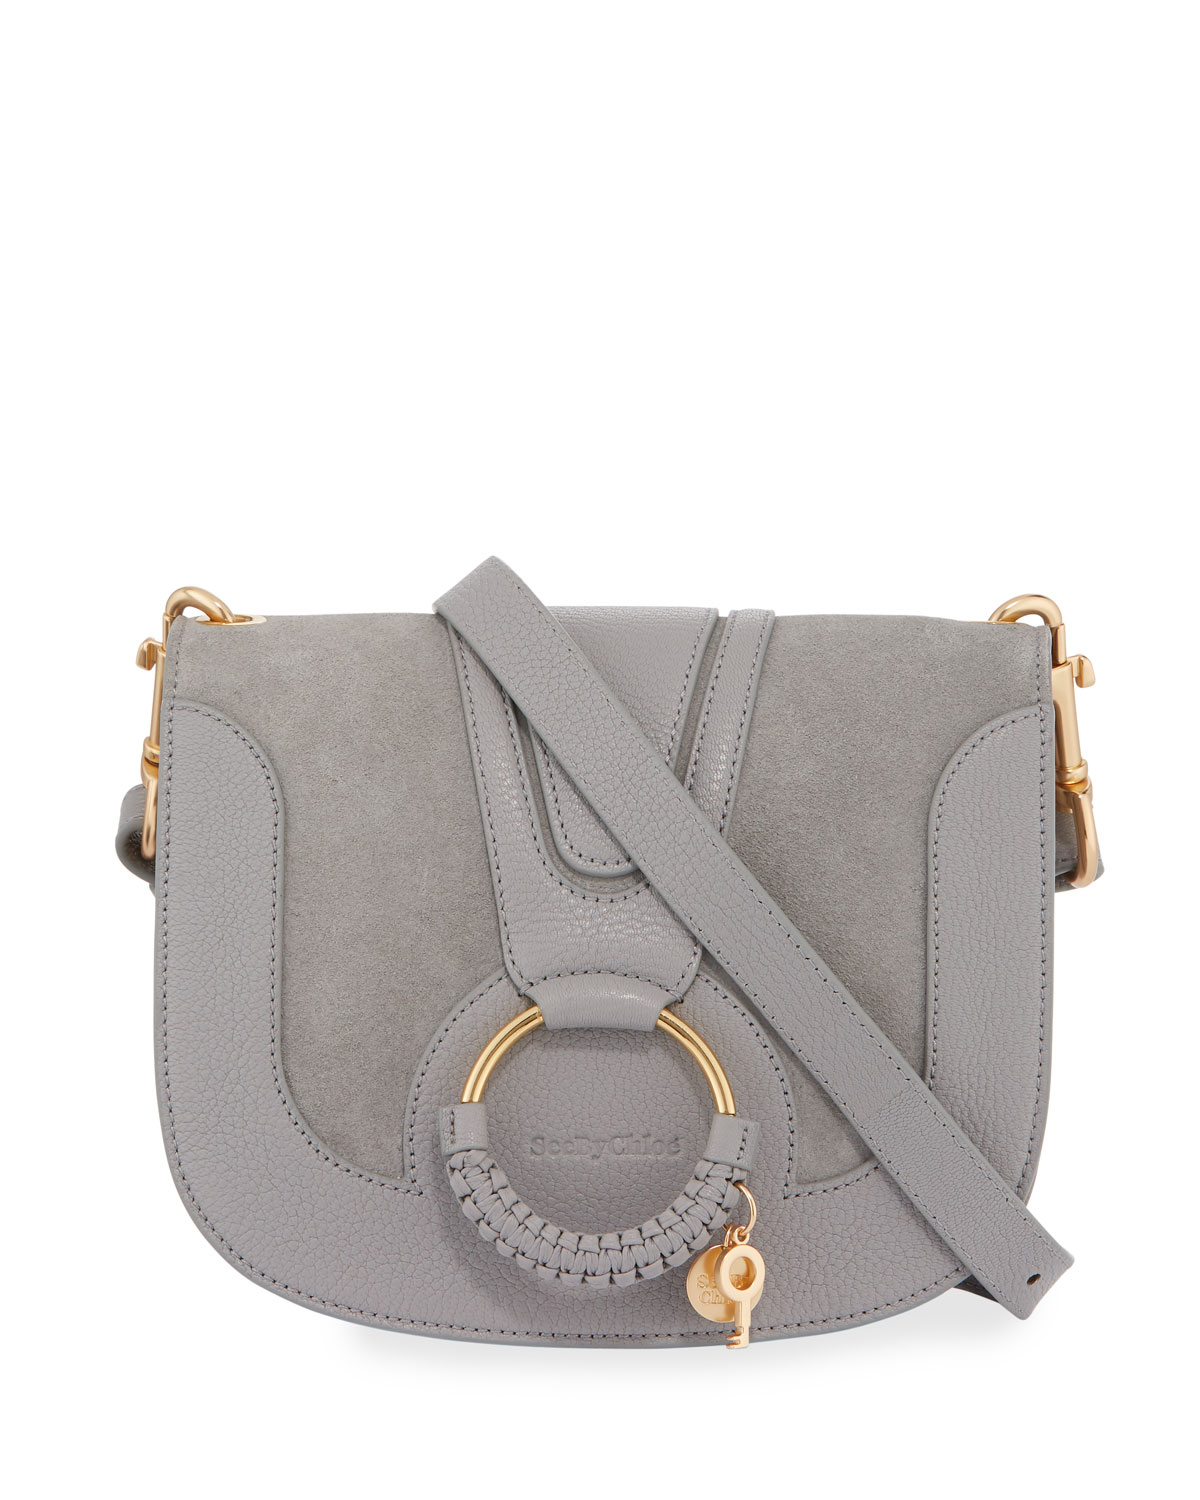 0fdcc182c8c0 See by Chloe Hana Small Leather Suede Crossbody Bag